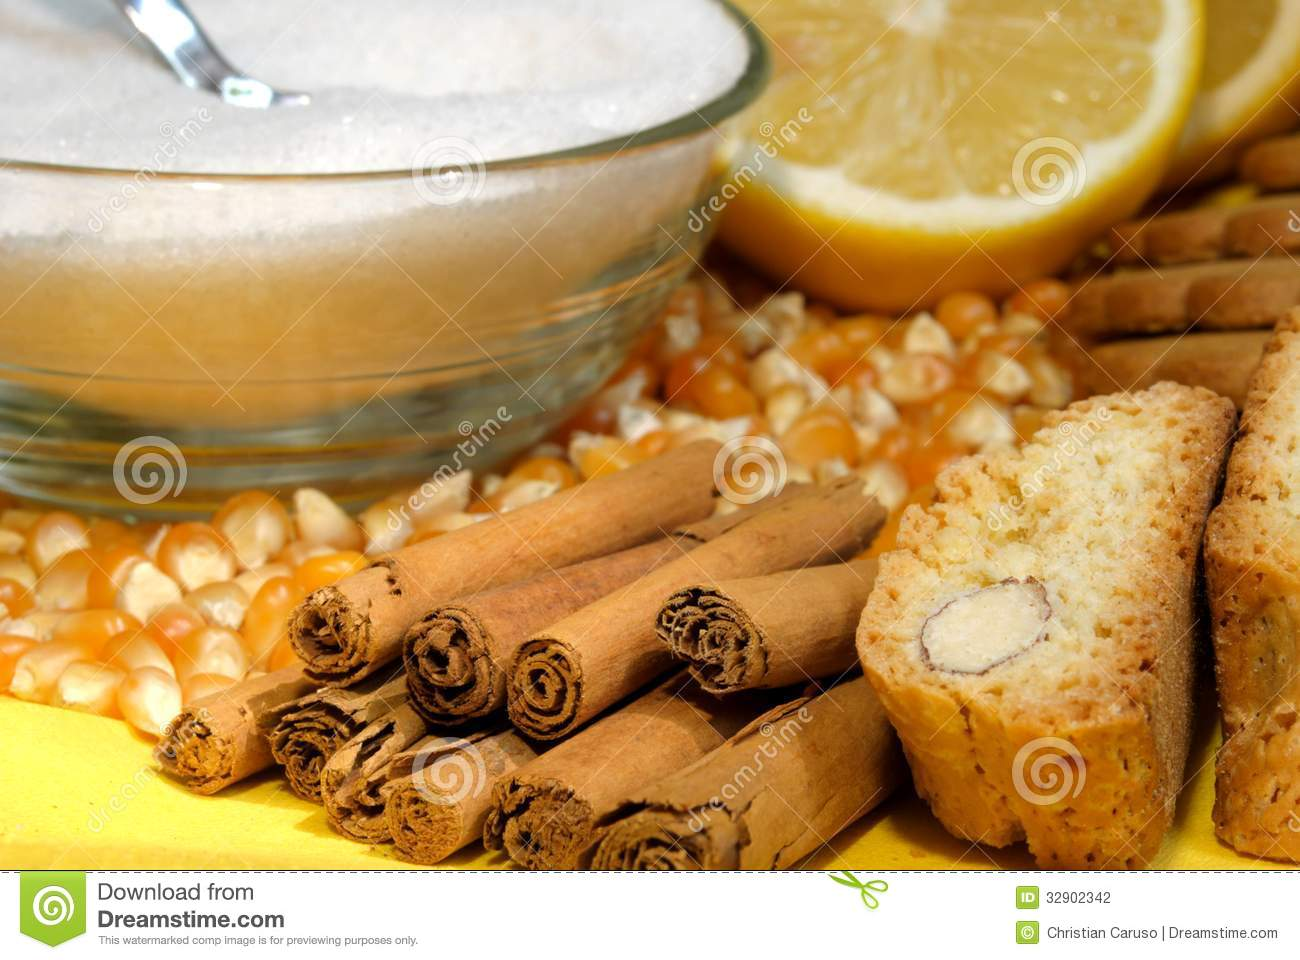 Lemon and cinnamon stock photography image 32902342 for What are the ingredients to make a cake